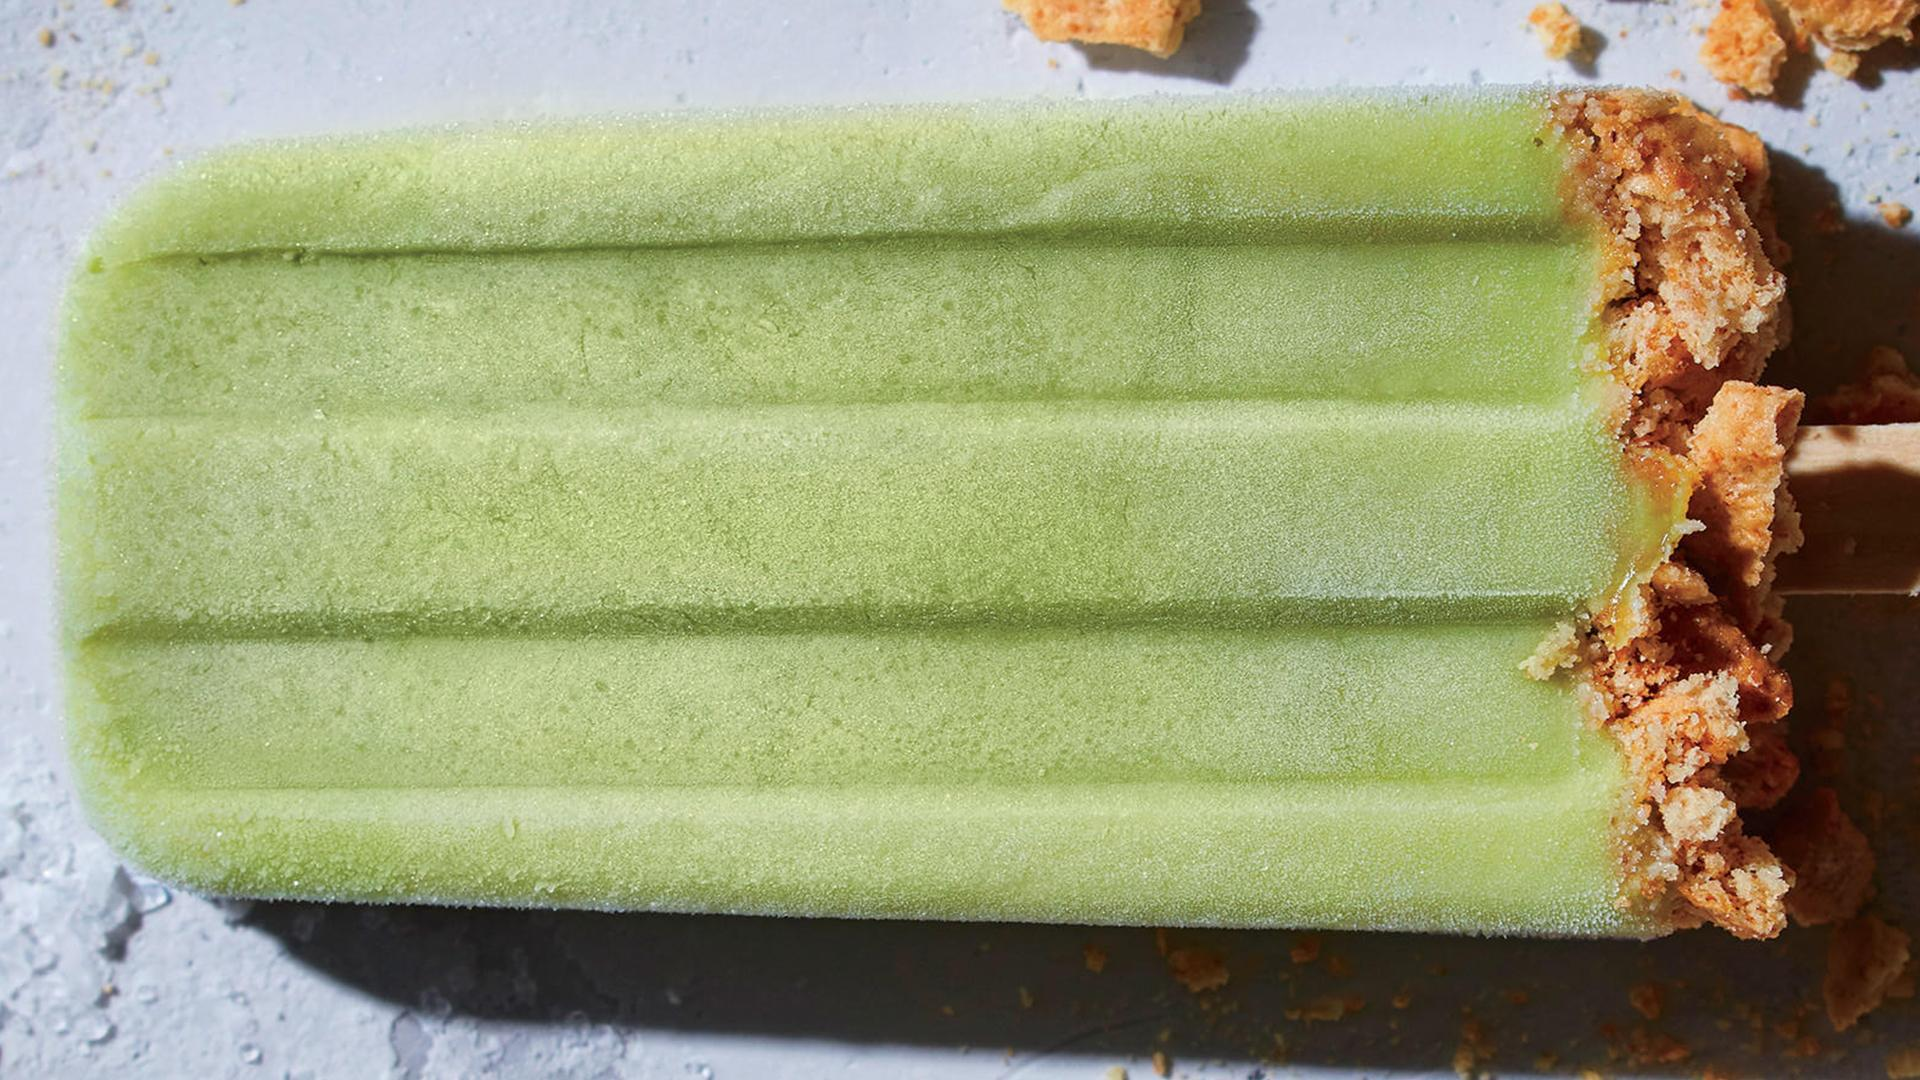 How to Make Creamy Key Lime Ice Pops